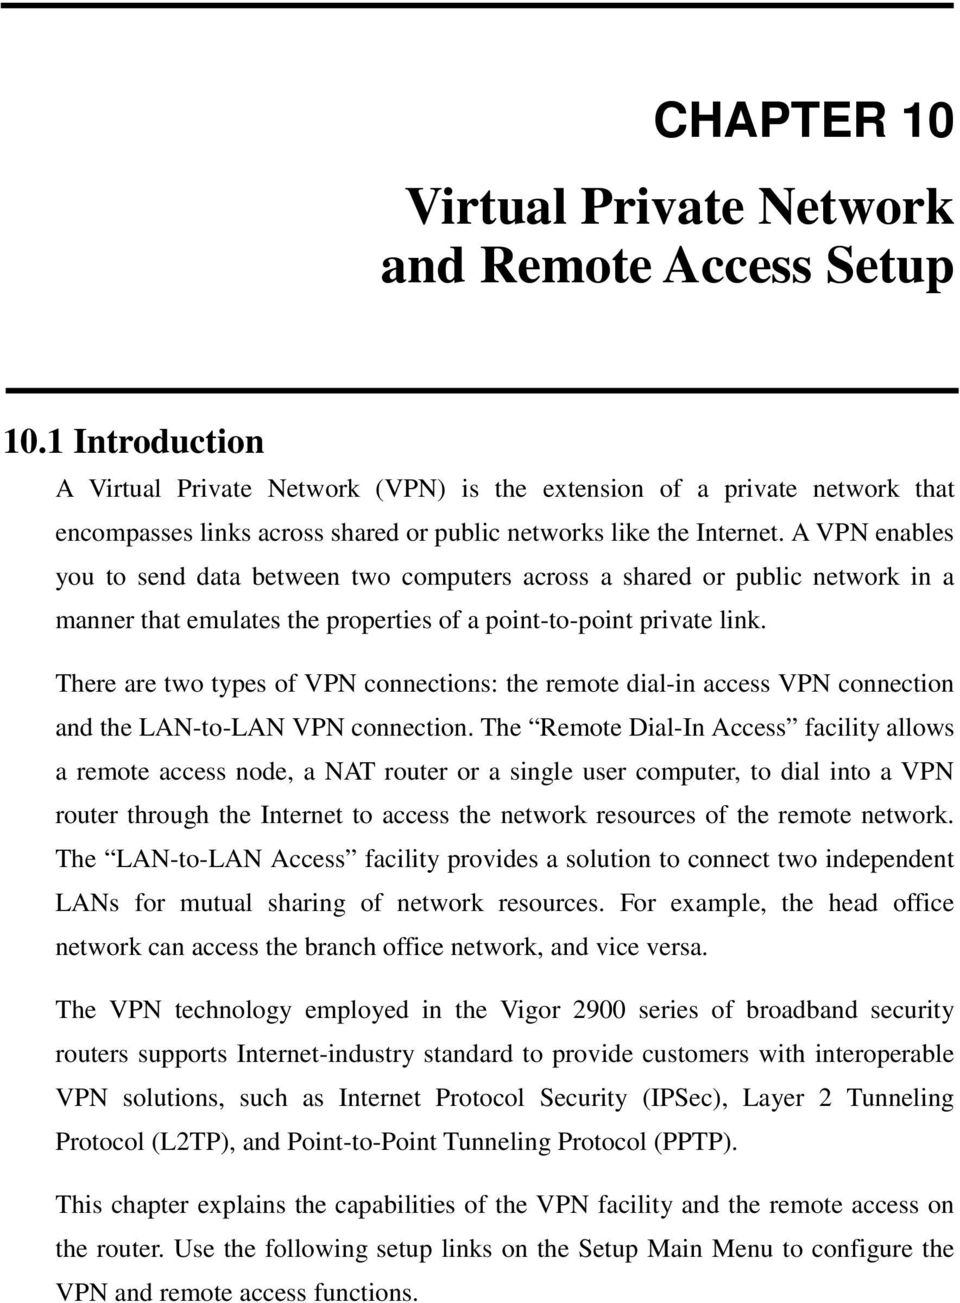 A VPN enables you to send data between two computers across a shared or public network in a manner that emulates the properties of a point-to-point private link.